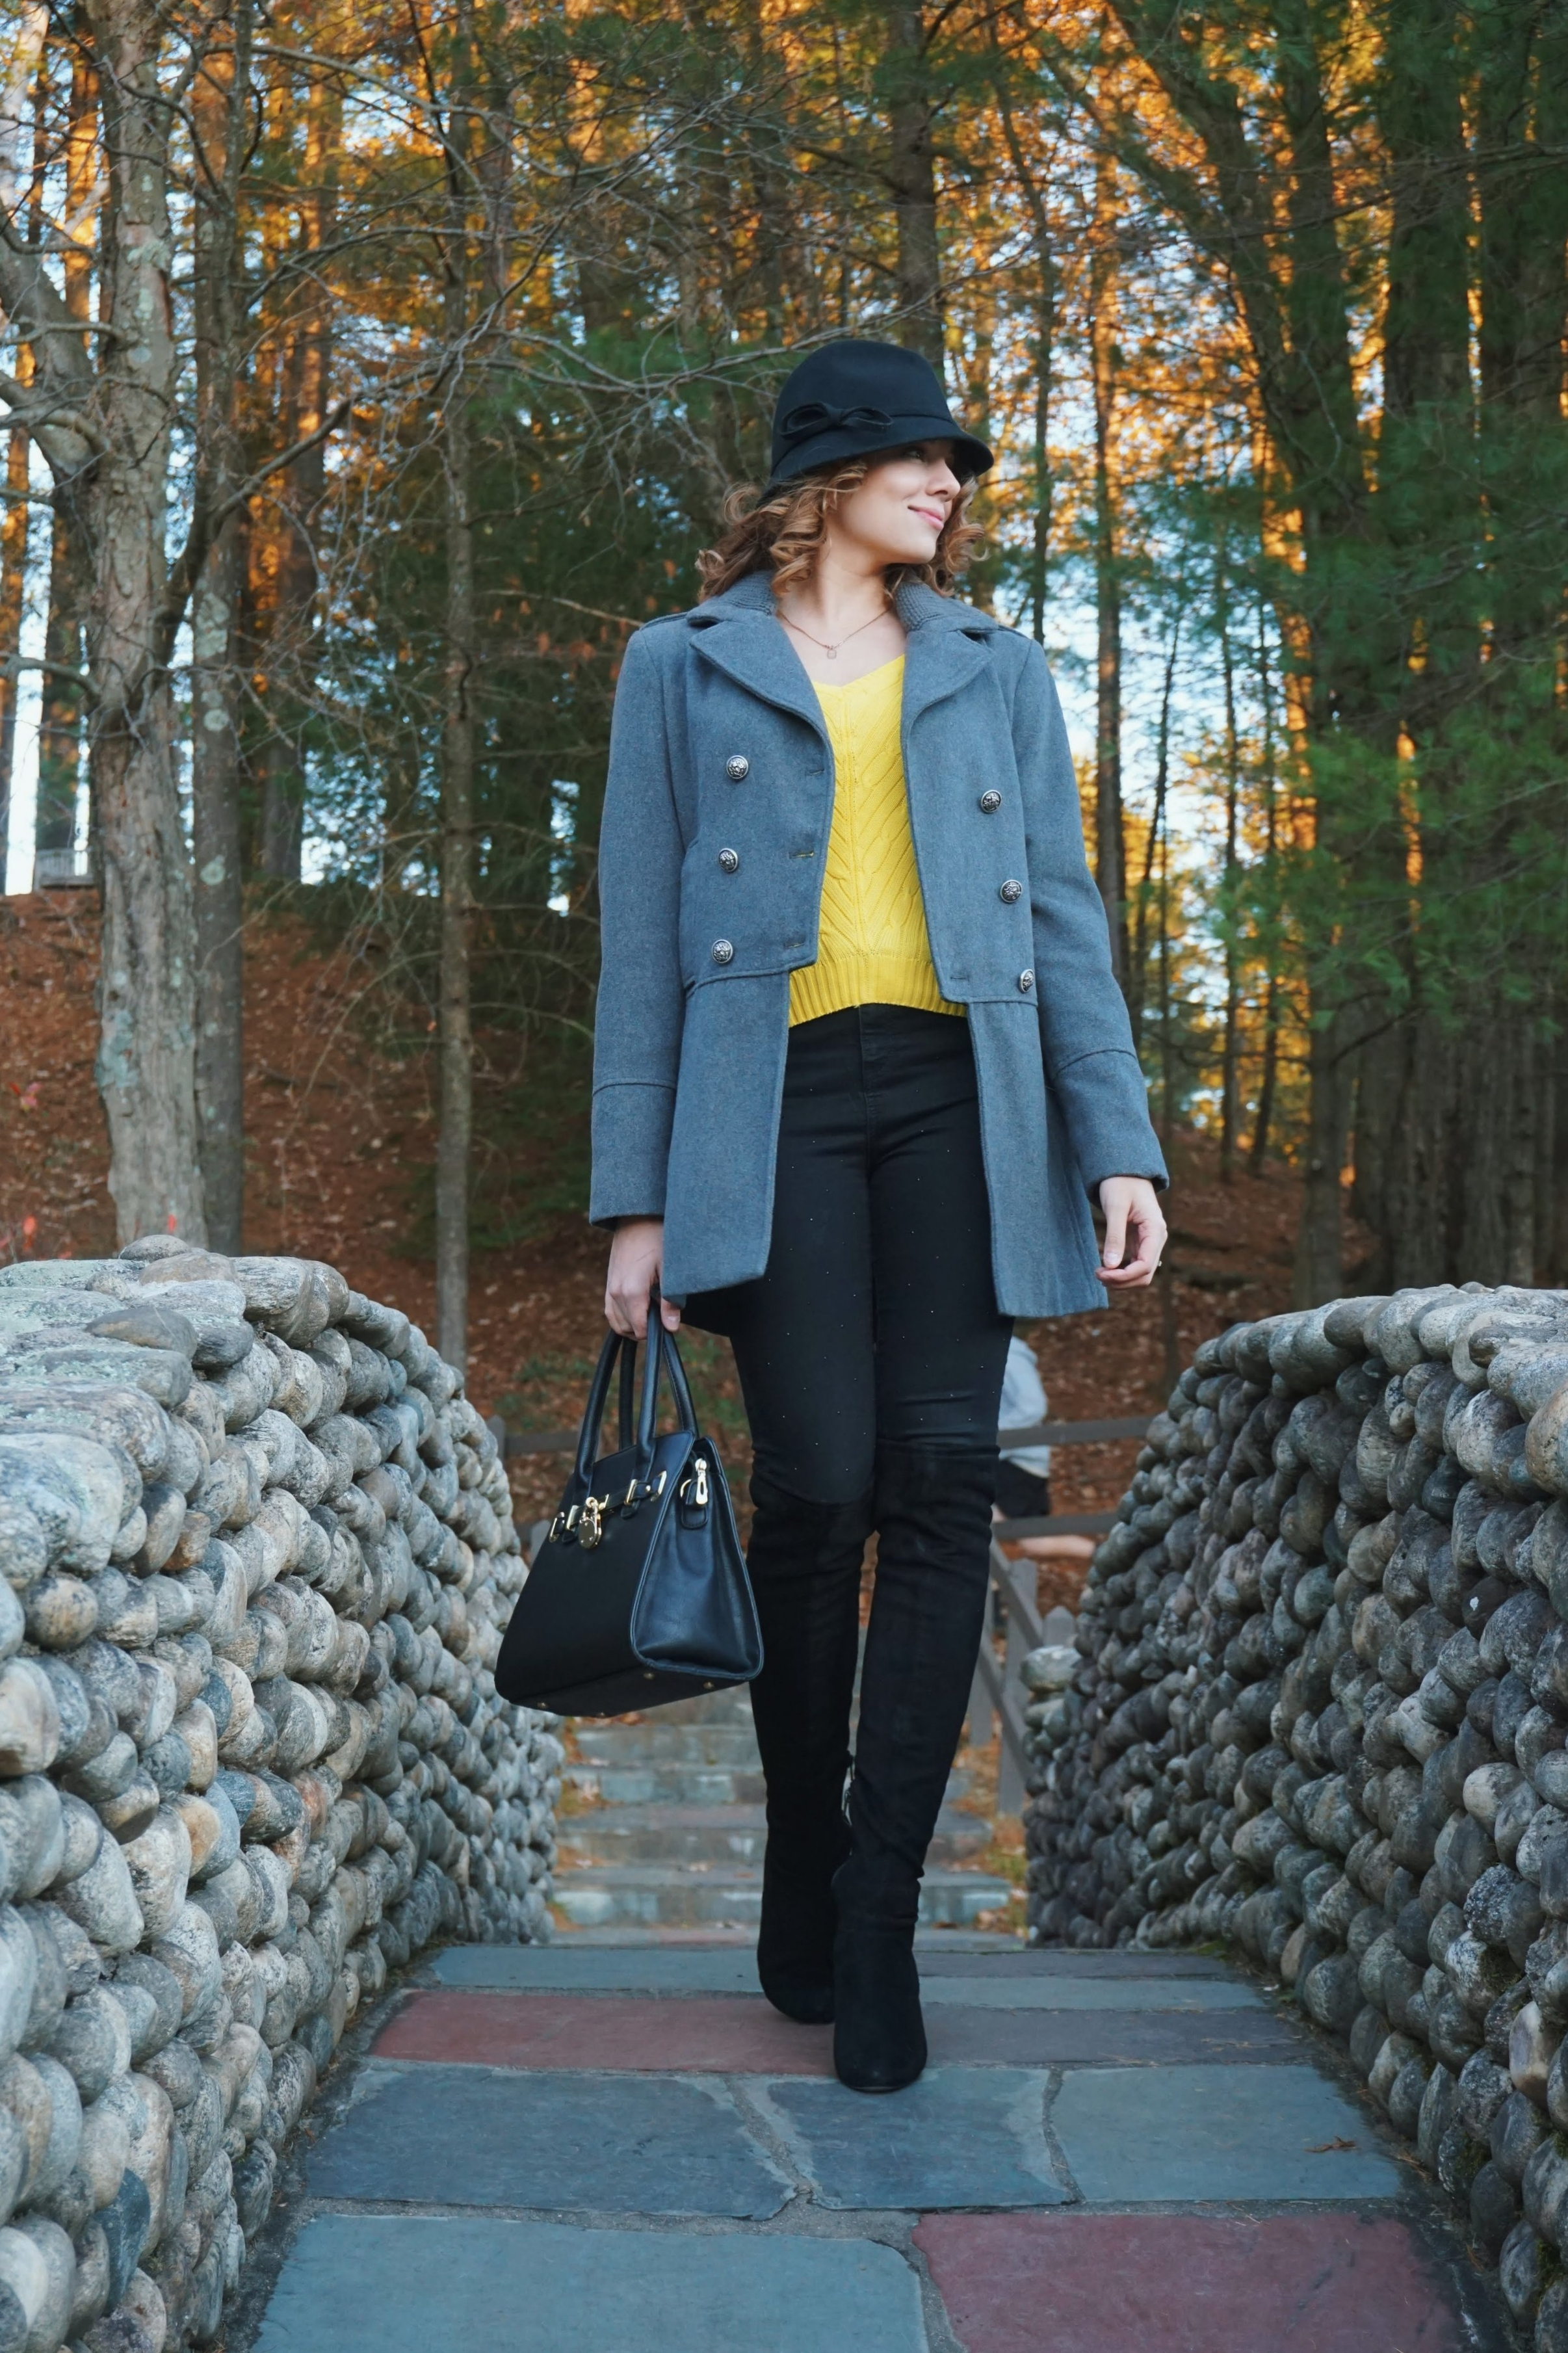 An example of a fall outfit: gray coat, yellow sweater, black jeans and boots and hat.